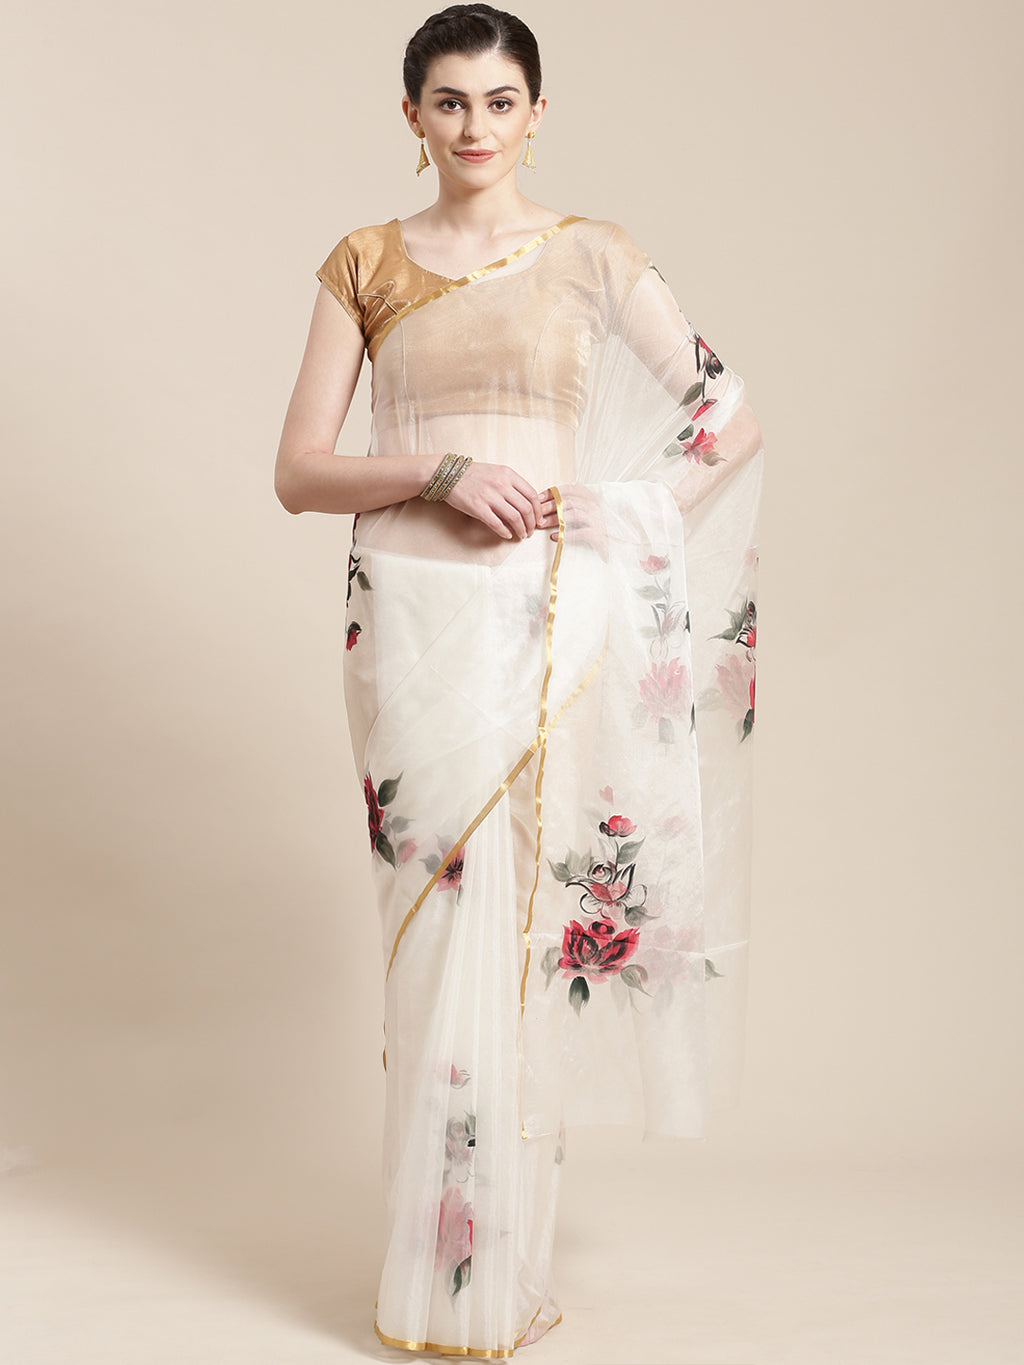 White & Red Floral Hand Painted Organza Saree-Saree-Kalakari India-BHKPSA0128-Hand Painted, Organza, Sarees, Sustainable Fabrics, Traditional Weave-[Linen,Ethnic,wear,Fashionista,Handloom,Handicraft,Indigo,blockprint,block,print,Cotton,Chanderi,Blue, latest,classy,party,bollywood,trendy,summer,style,traditional,formal,elegant,unique,style,hand,block,print, dabu,booti,gift,present,glamorous,affordable,collectible,Sari,Saree,printed, holi, Diwali, birthday, anniversary, sustainable, organic, scarf